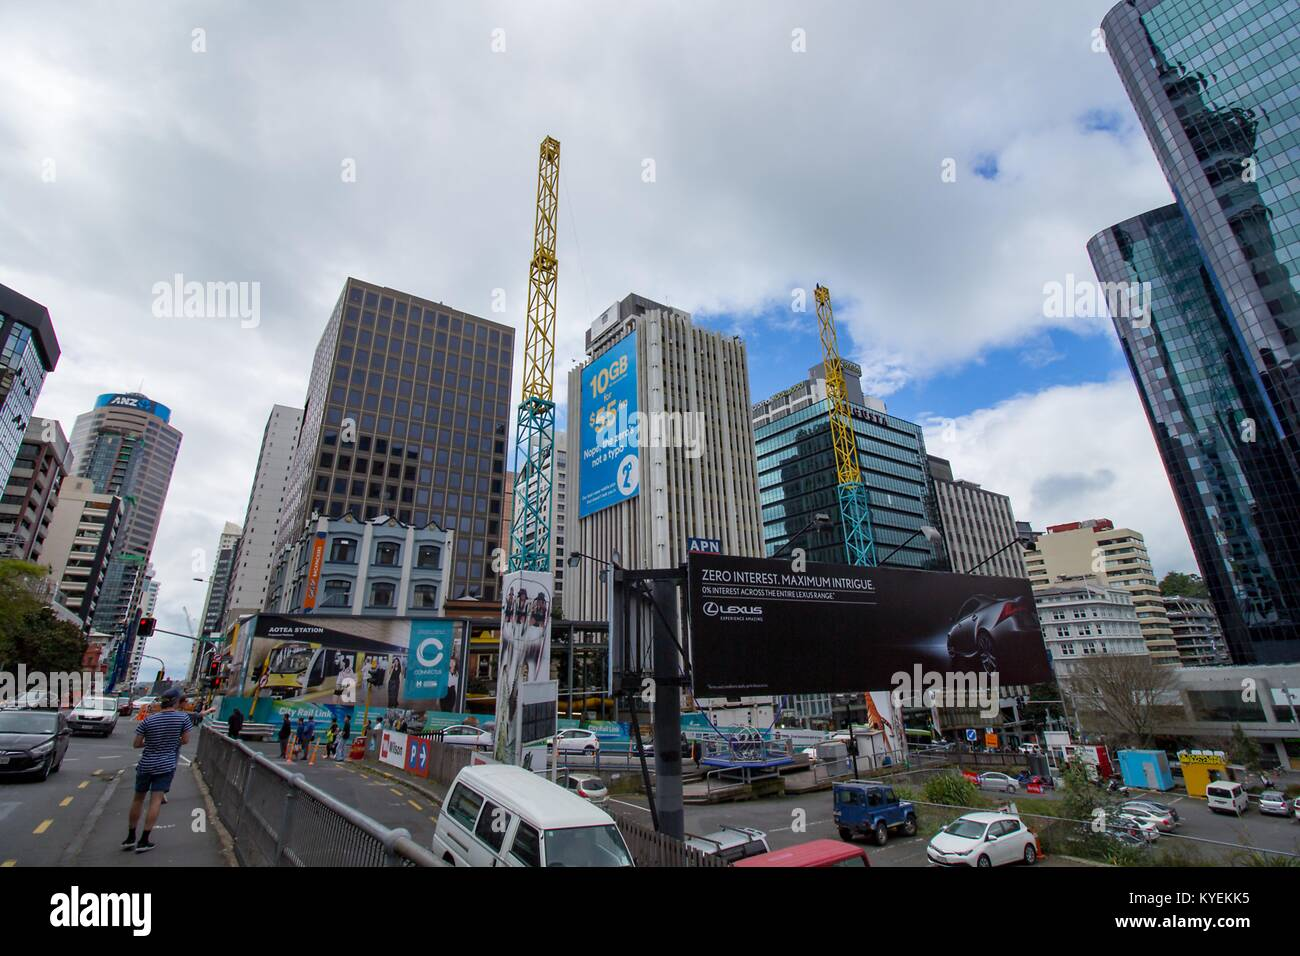 City center and business district viewed from Albert Street in downtown Auckland, New Zealand, October 10, 2017. - Stock Image